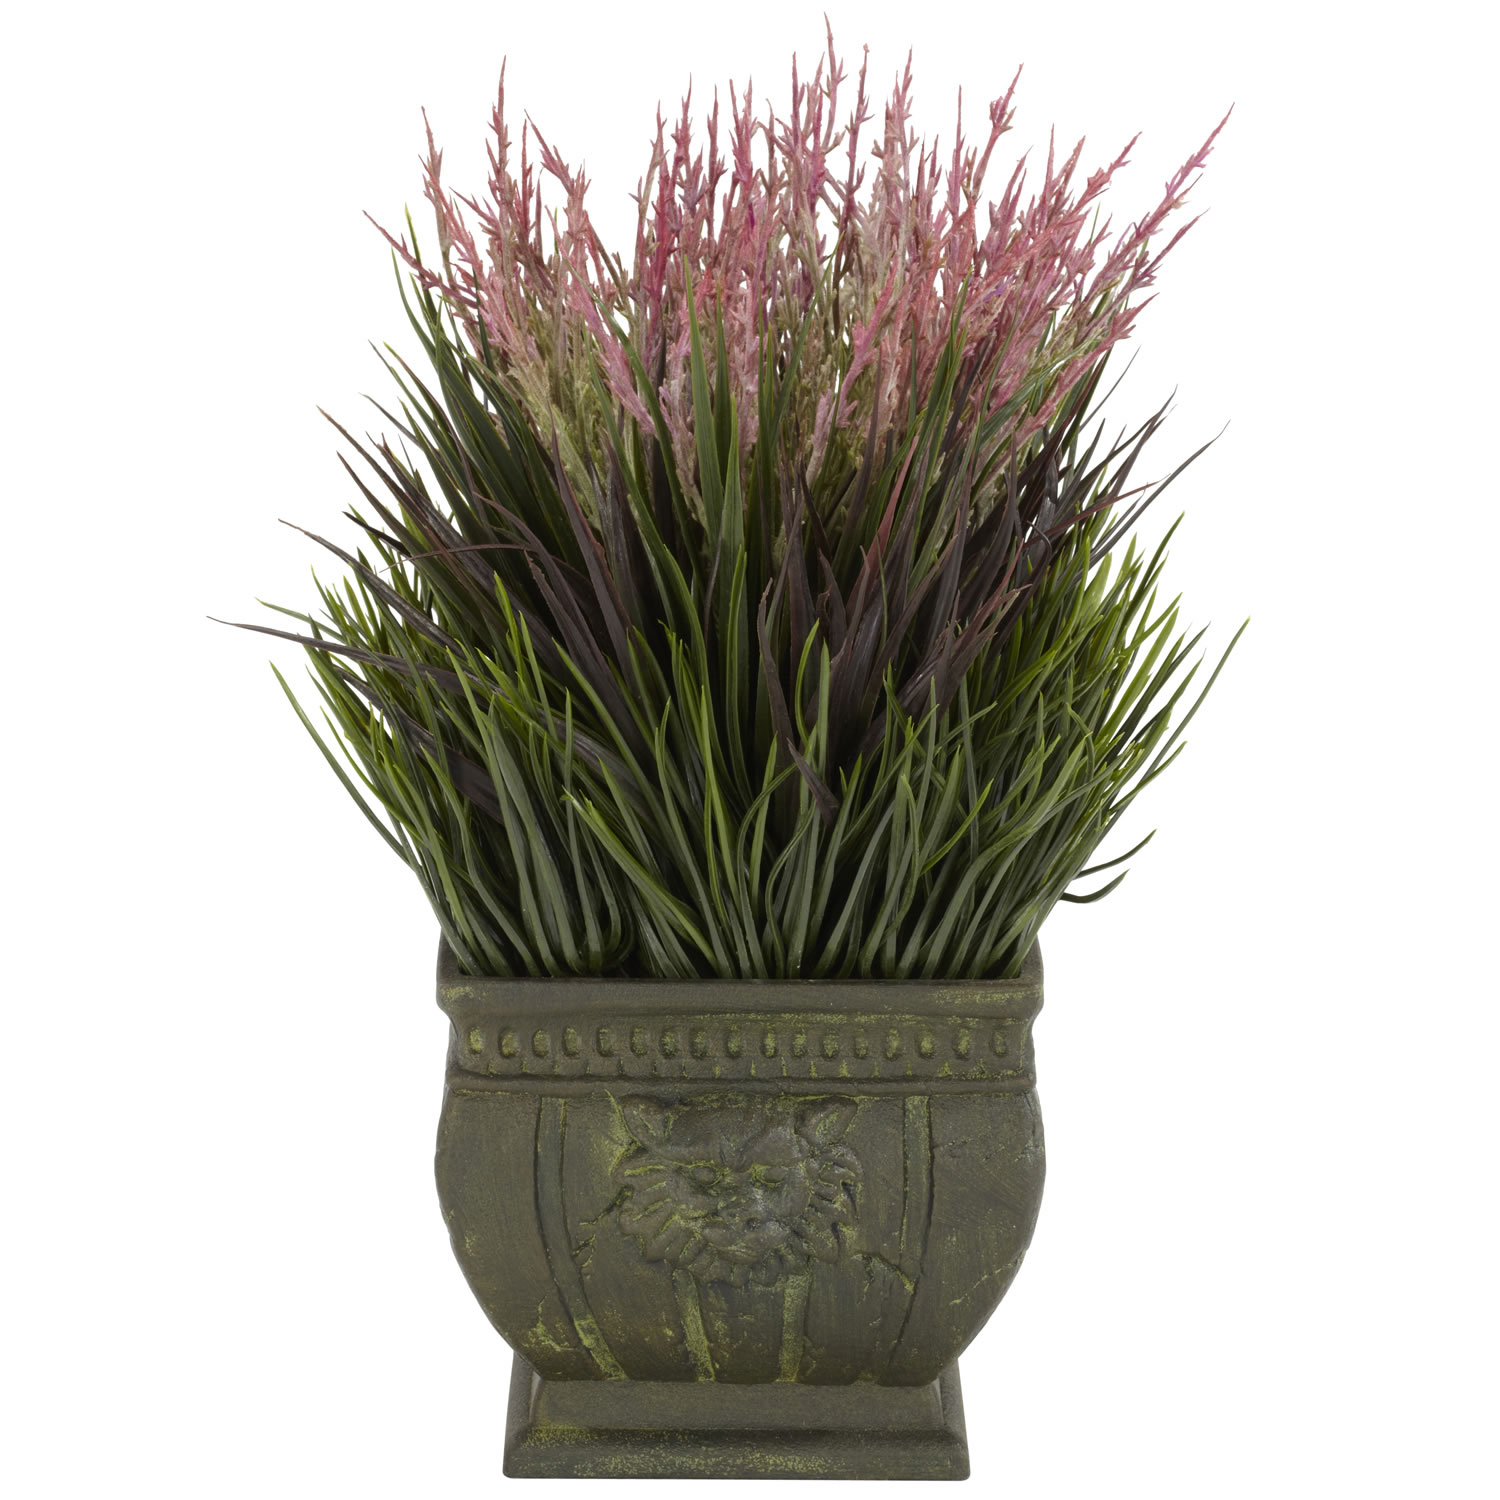 13 Inch Mixed Grass In Decorative Planter 4124